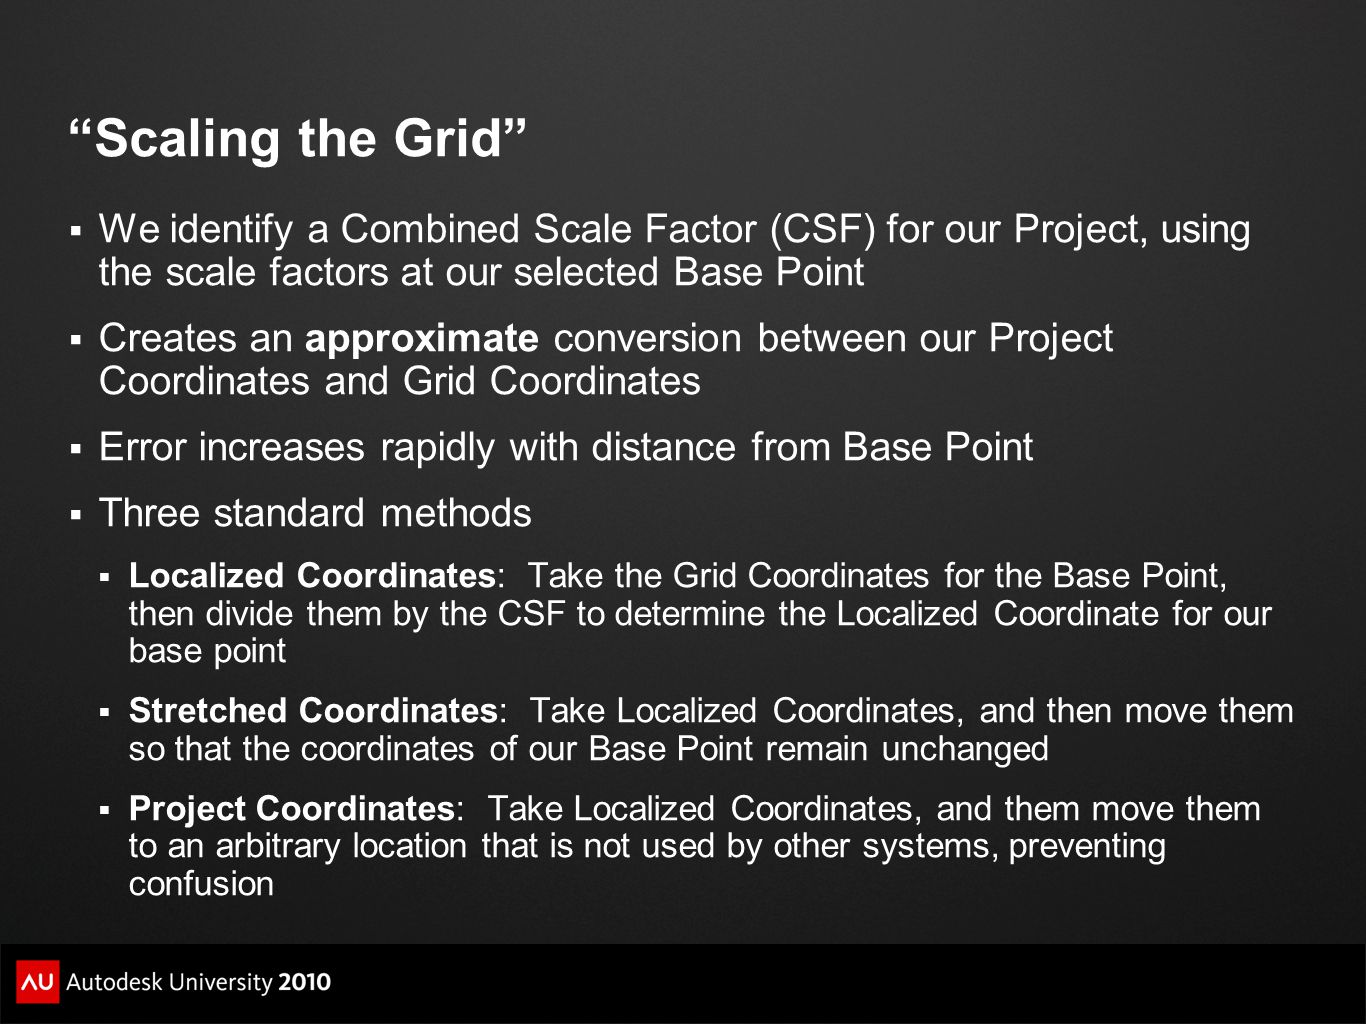 Scaling the Grid We identify a Combined Scale Factor (CSF) for our Project, using the scale factors at our selected Base Point.